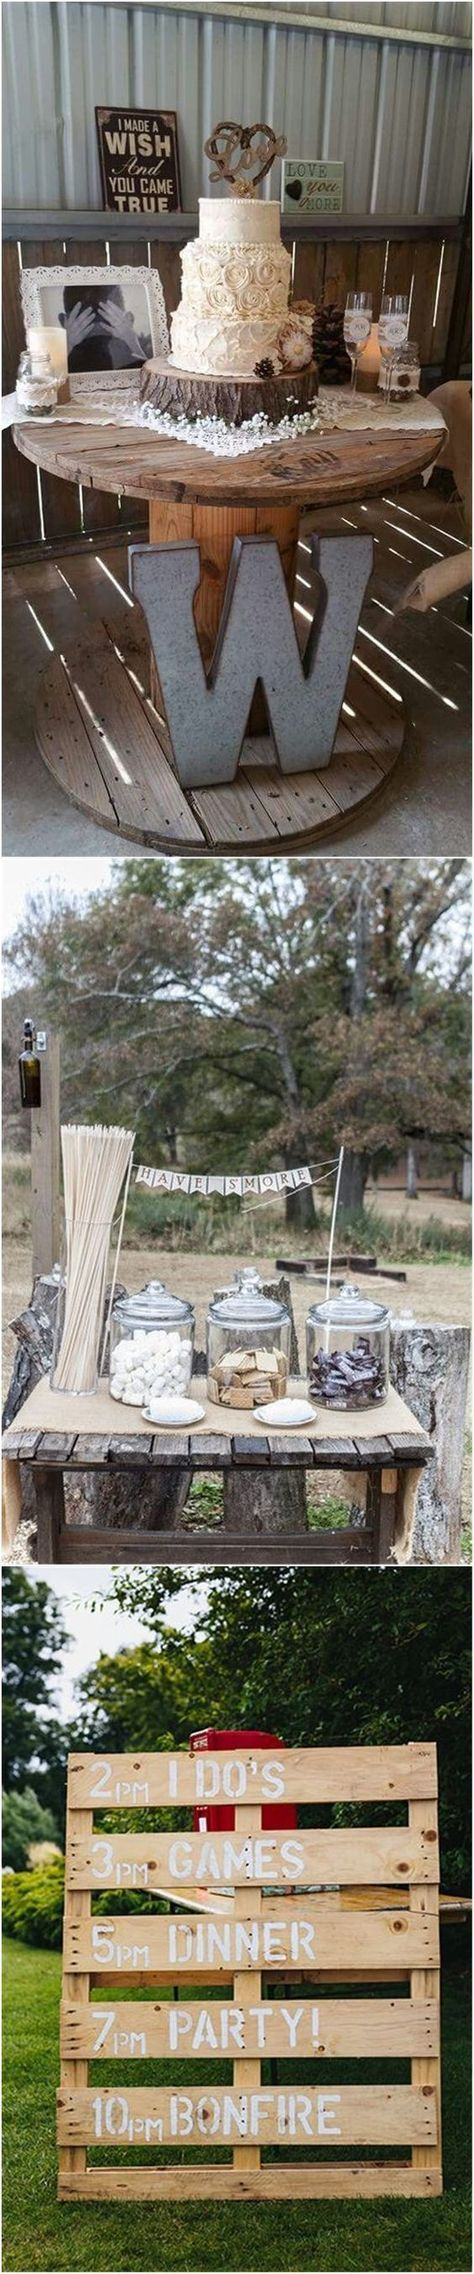 Image Result For What Are Weddings